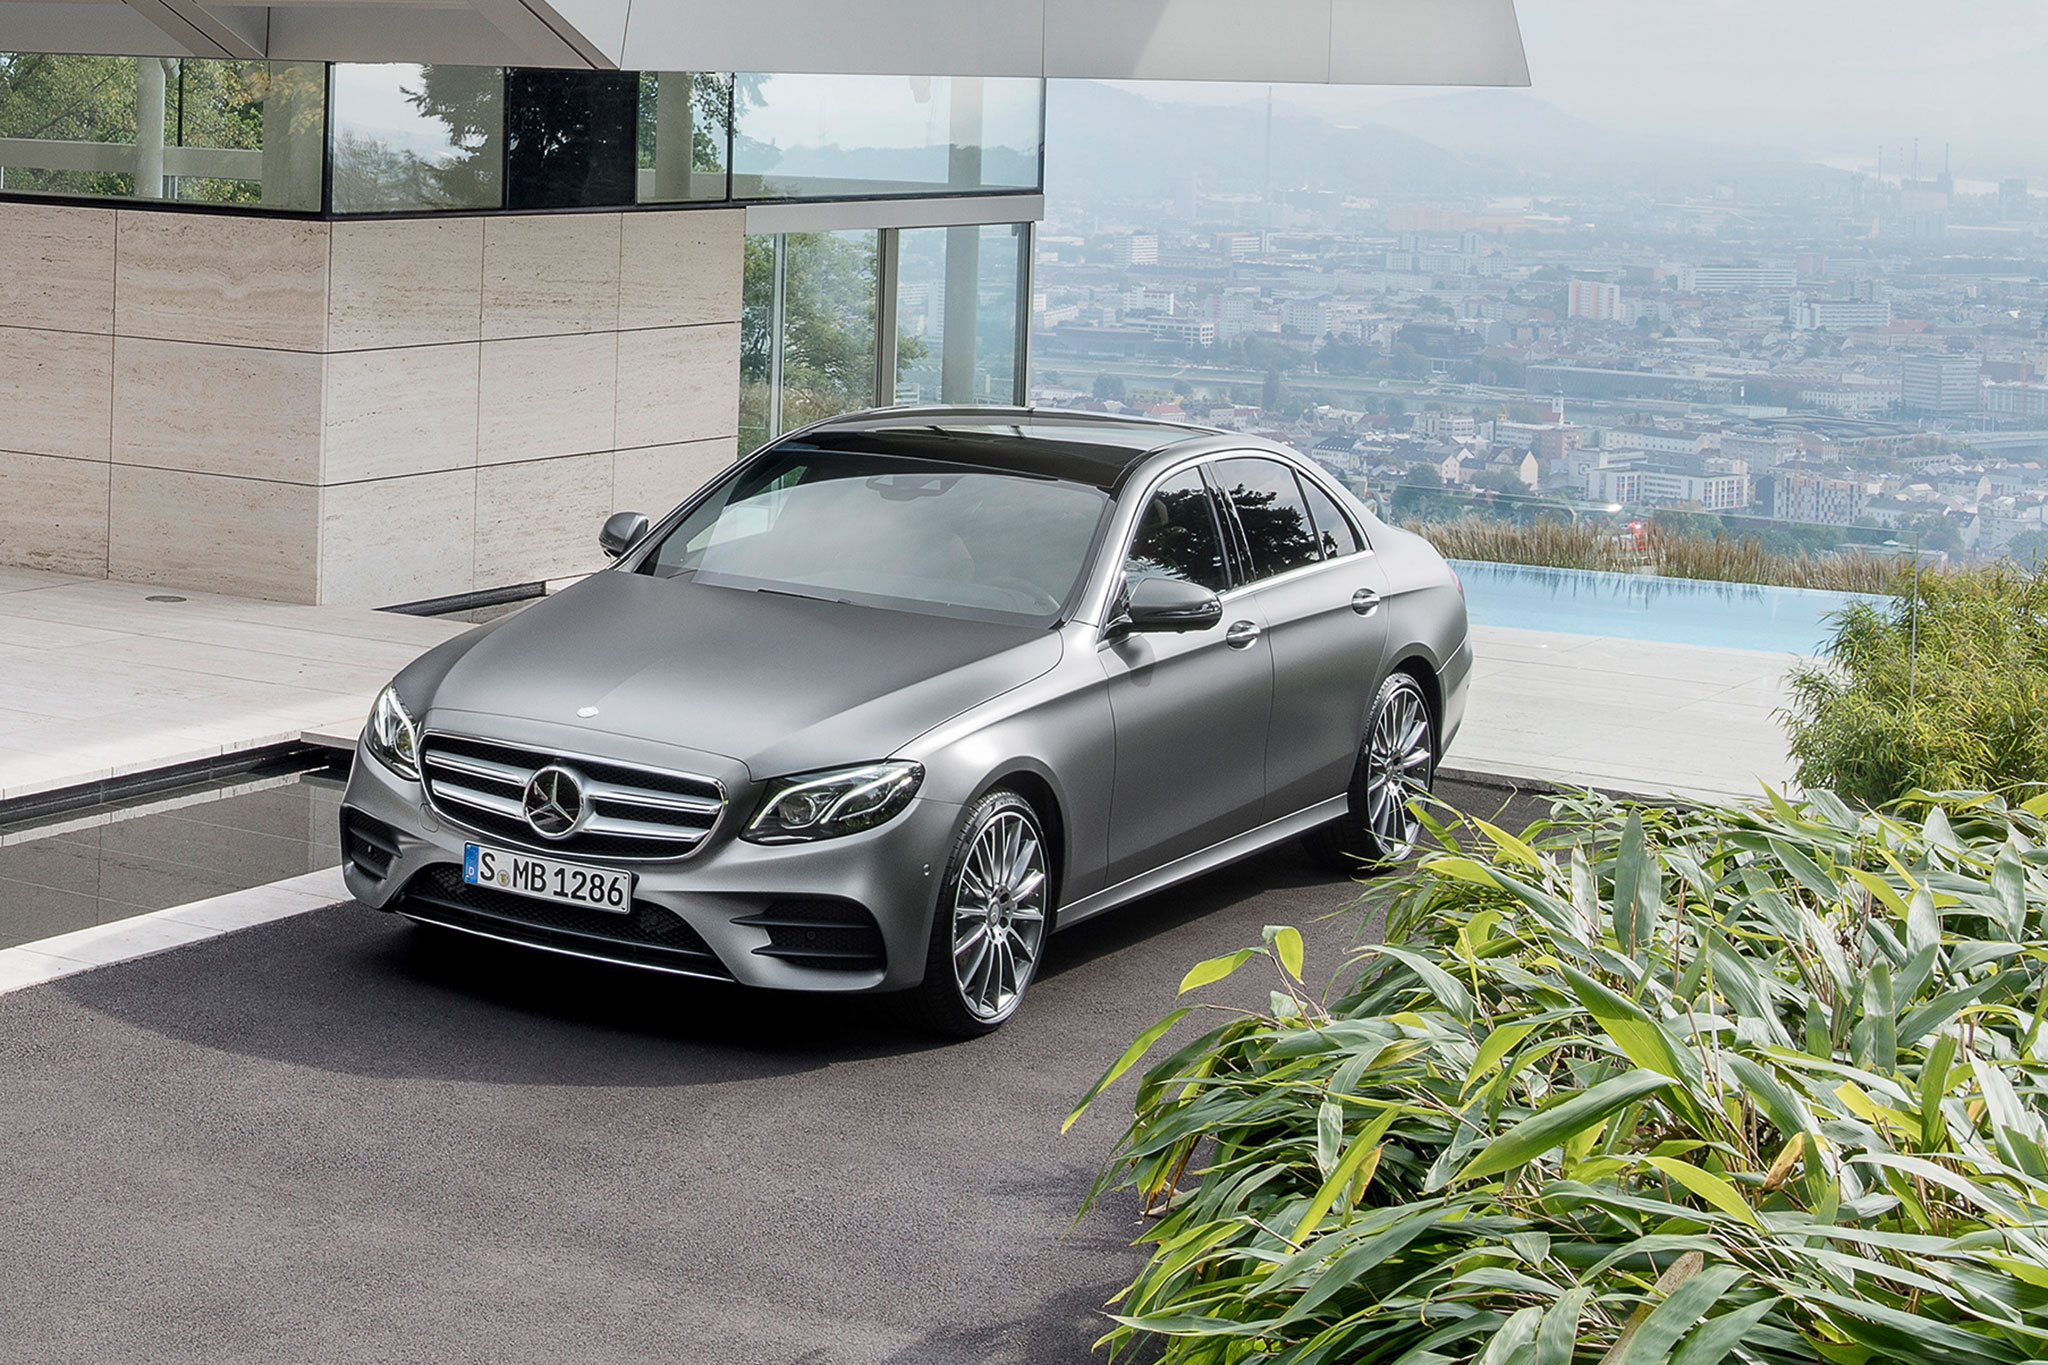 2017 mercedes benz e class debuts with sleek looks tons. Black Bedroom Furniture Sets. Home Design Ideas